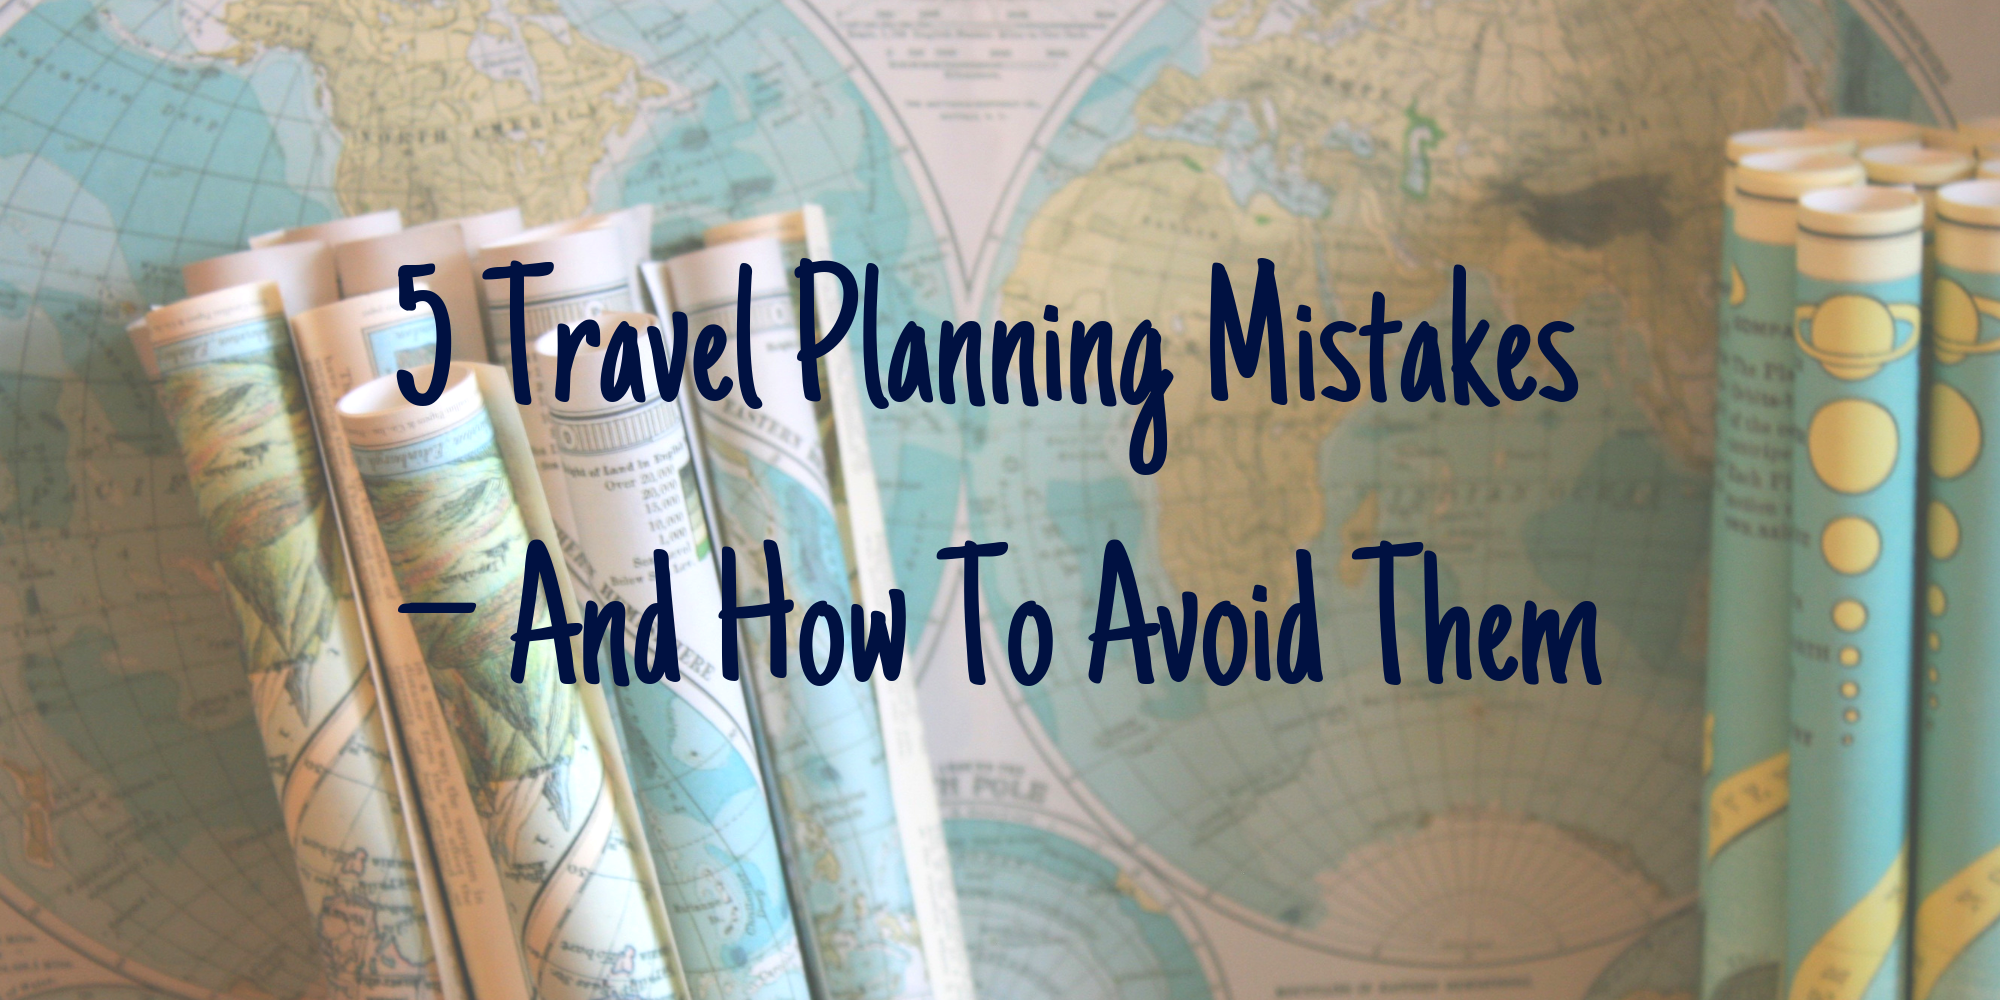 5 Travel Planning Mistakes – And How To Avoid Them